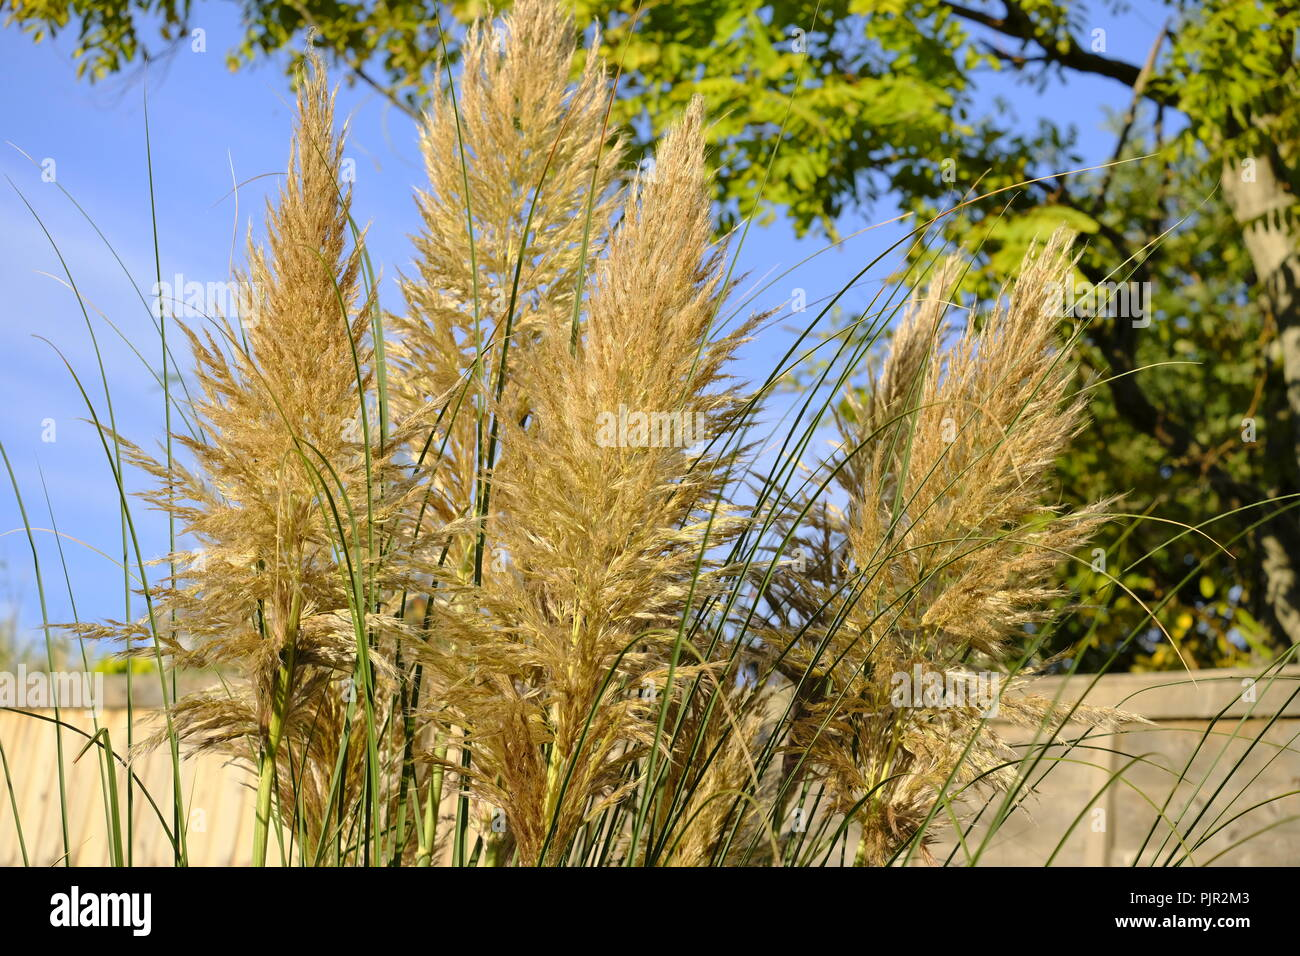 Pampas Grass plumes in late summer in a southern English garden, early morning. - Stock Image